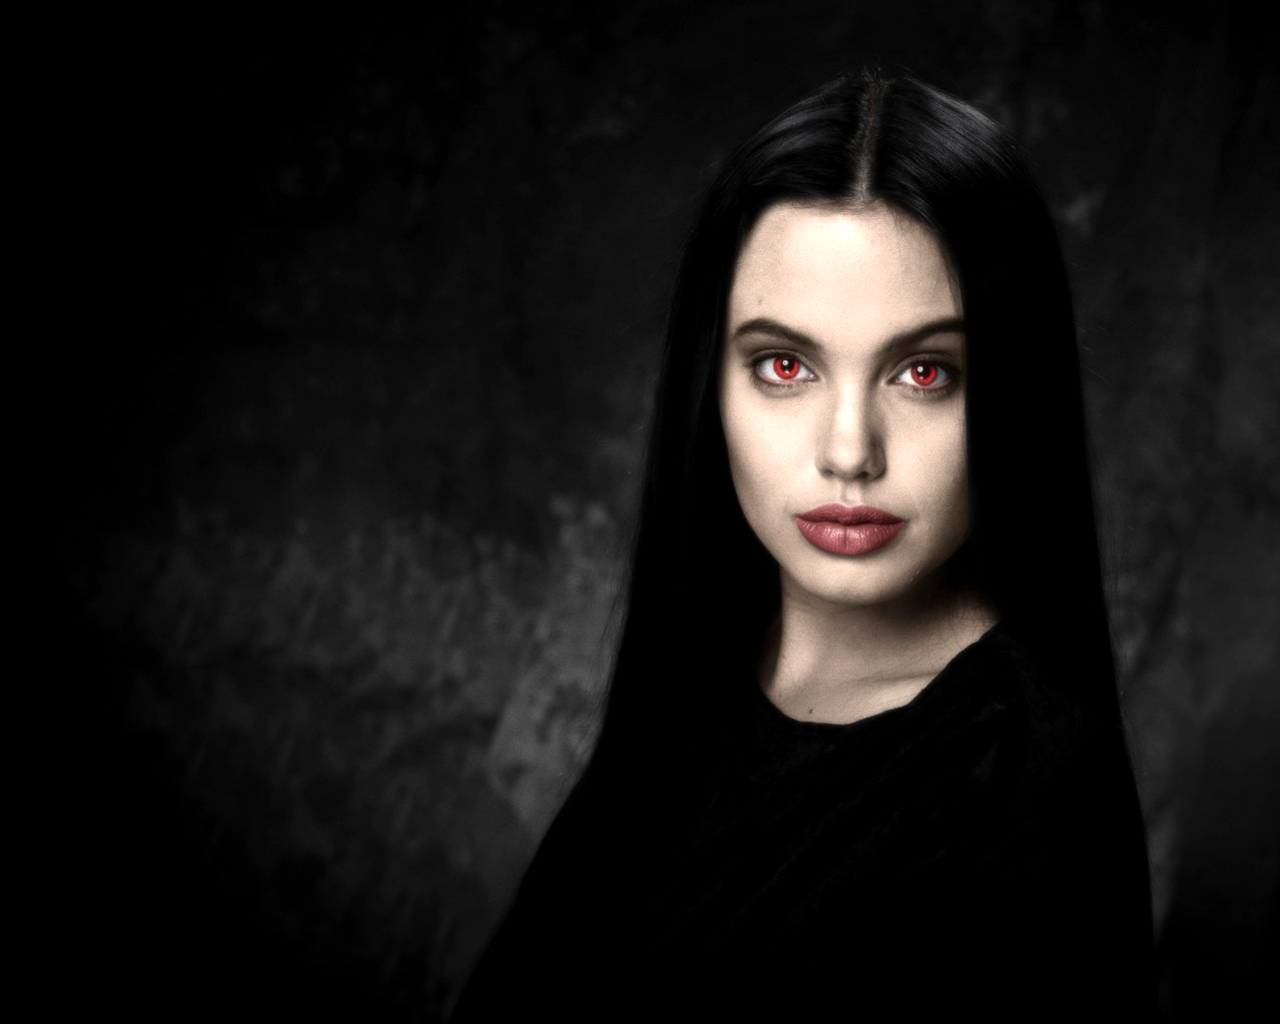 Pin Gothic Girl Wallpaper Download 1280x1024